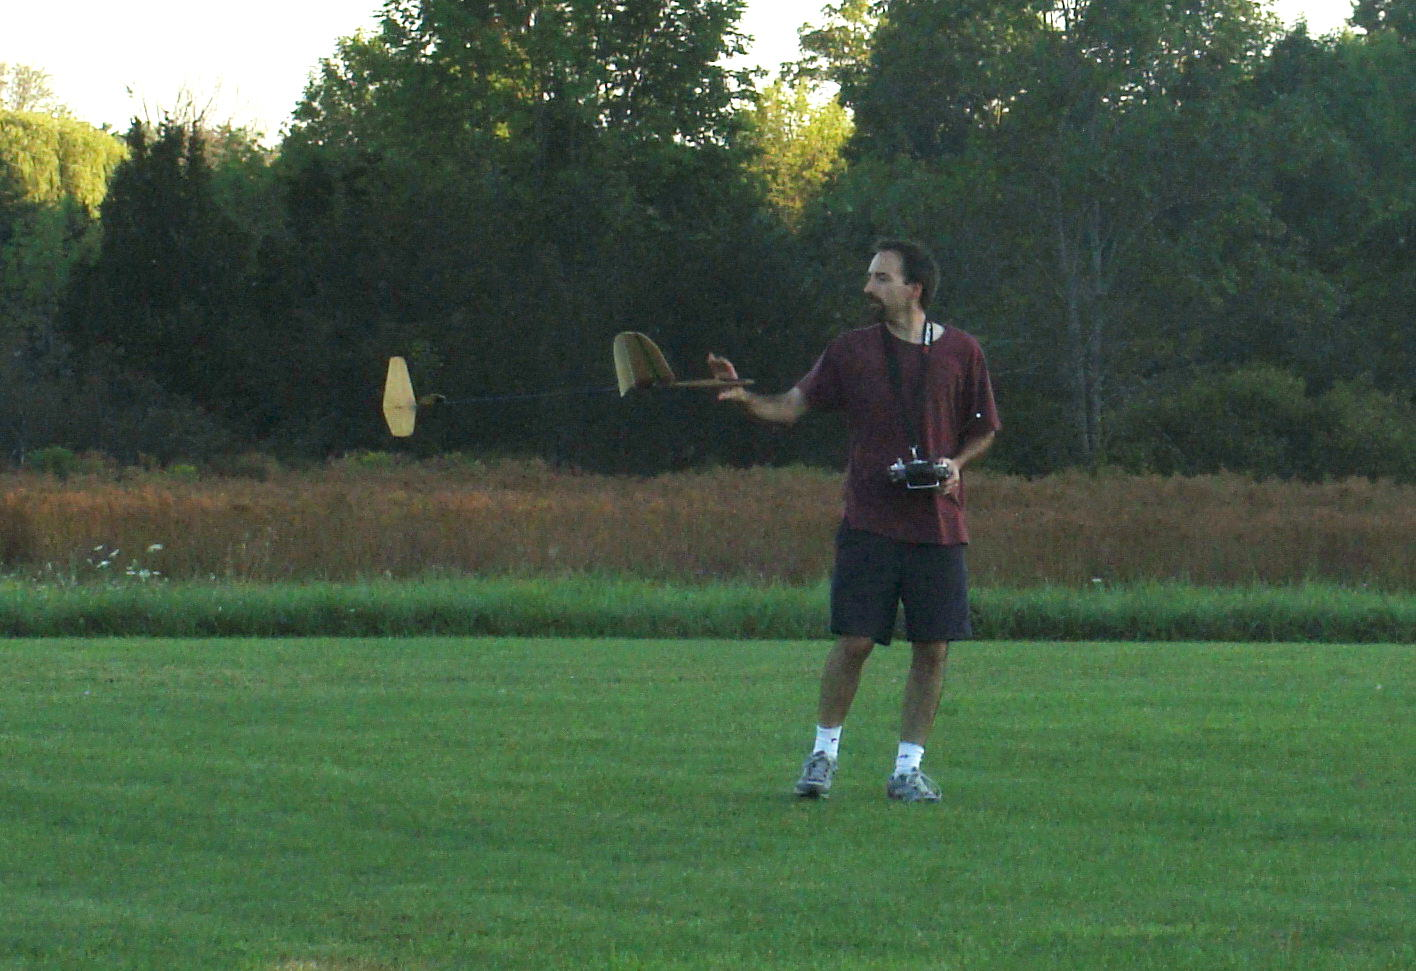 Discus Launch Free Flight Glider http://www.jonshobbies.com/spirit-100-glider-first-fpv-flights-ots-discus-launch-glider.html